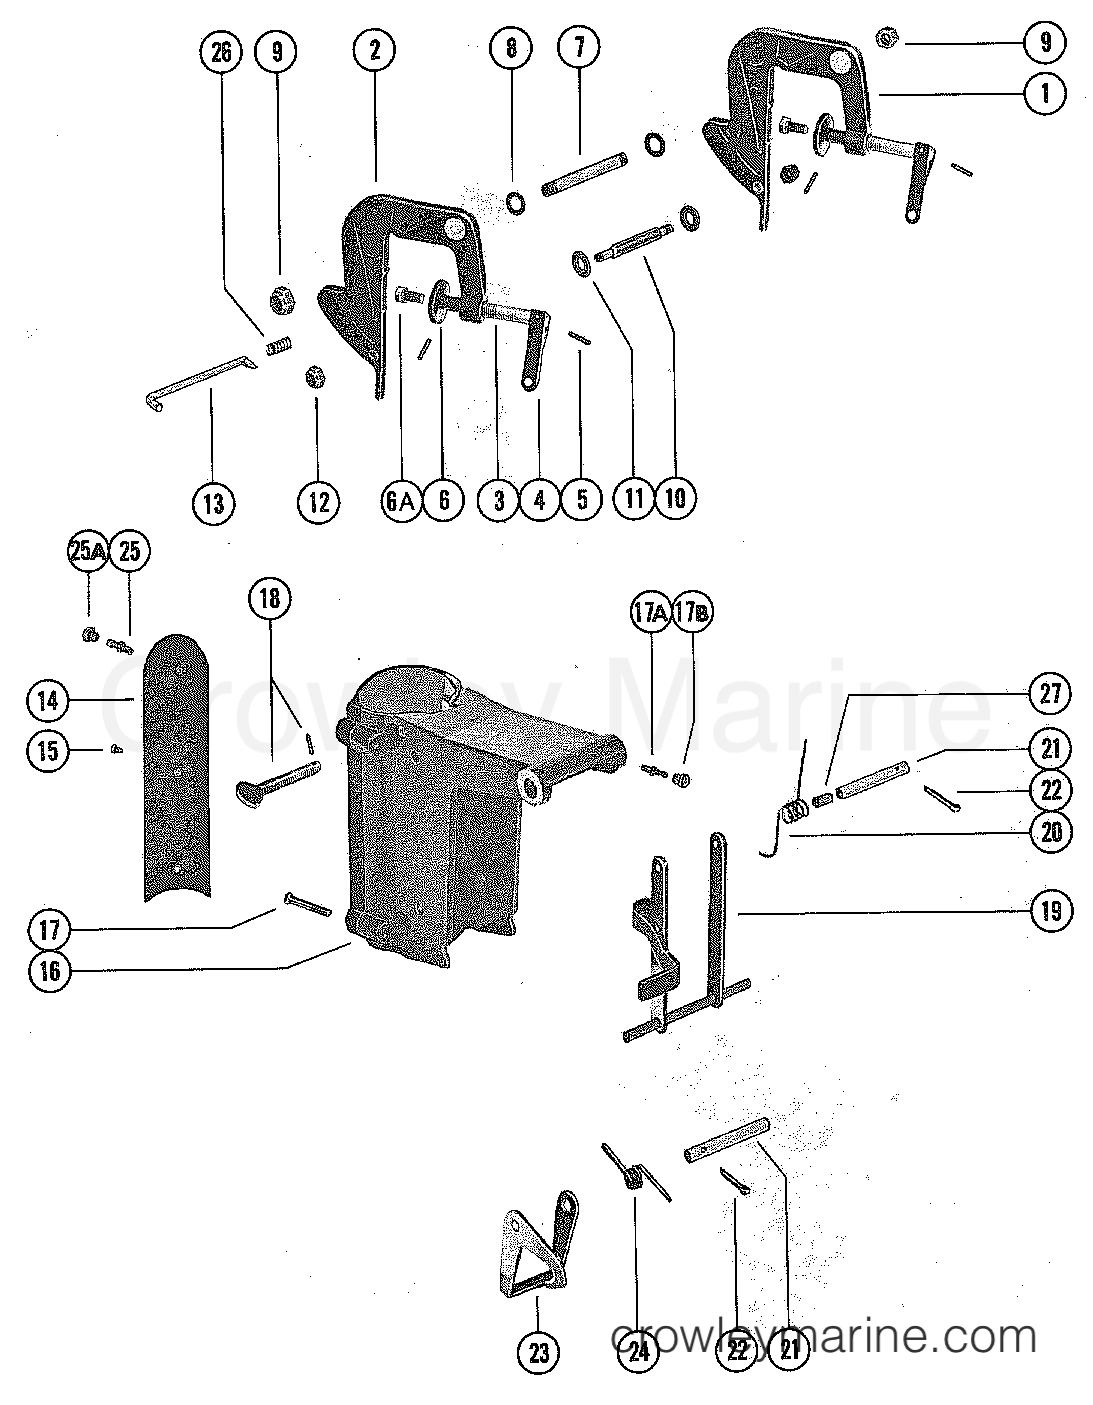 hight resolution of 1976 mercury outboard 4 m 1040206 clamp and swivel bracket assembly section